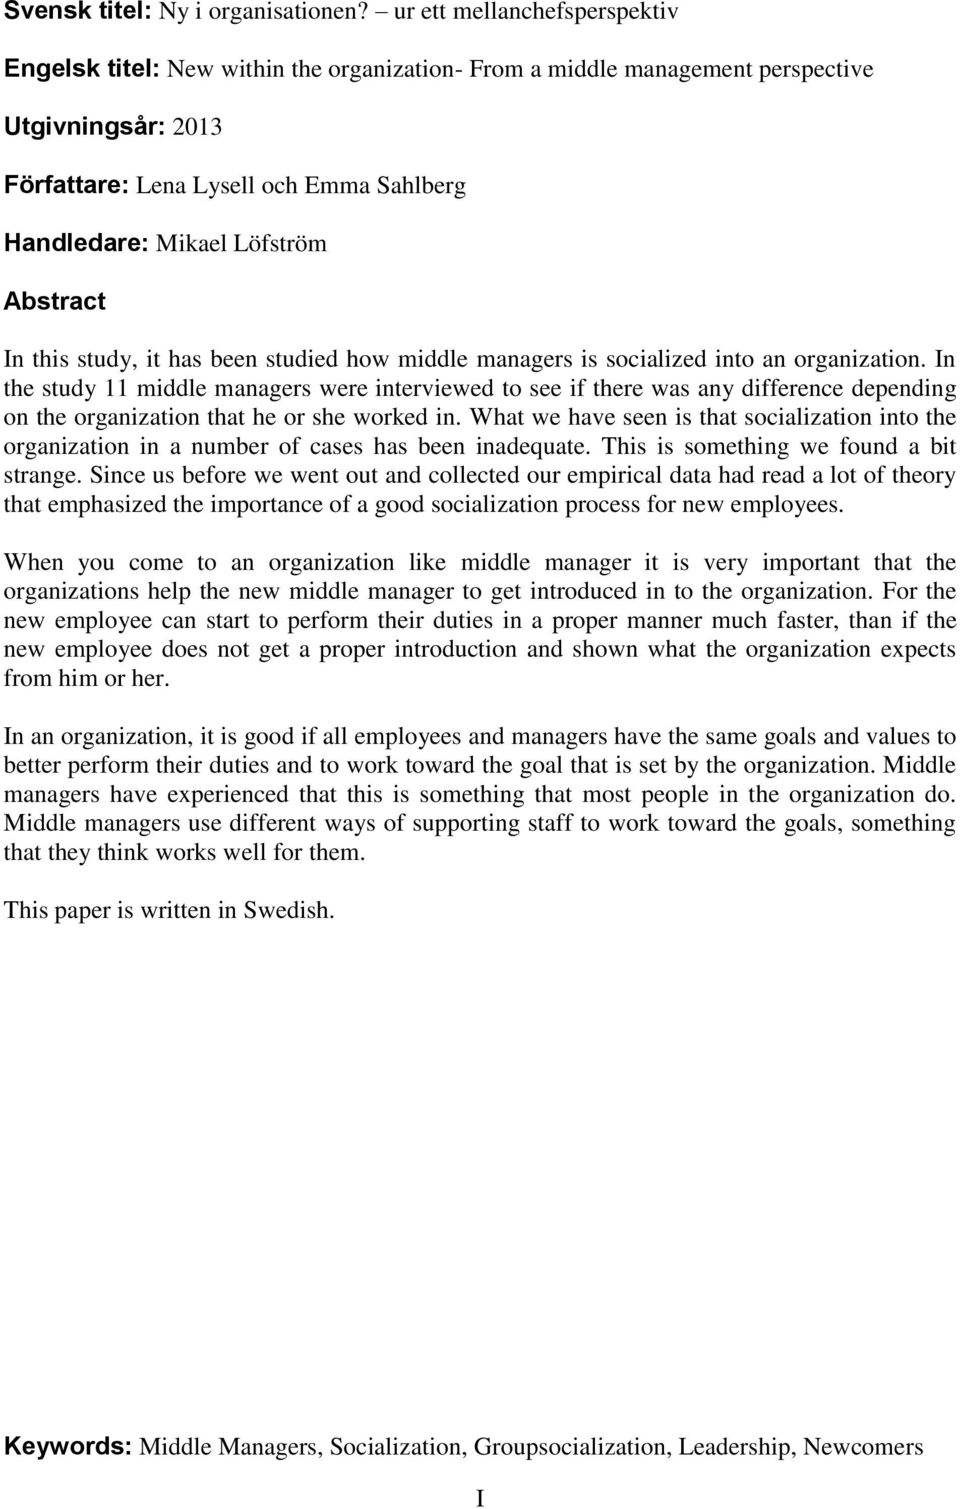 Abstract In this study, it has been studied how middle managers is socialized into an organization.